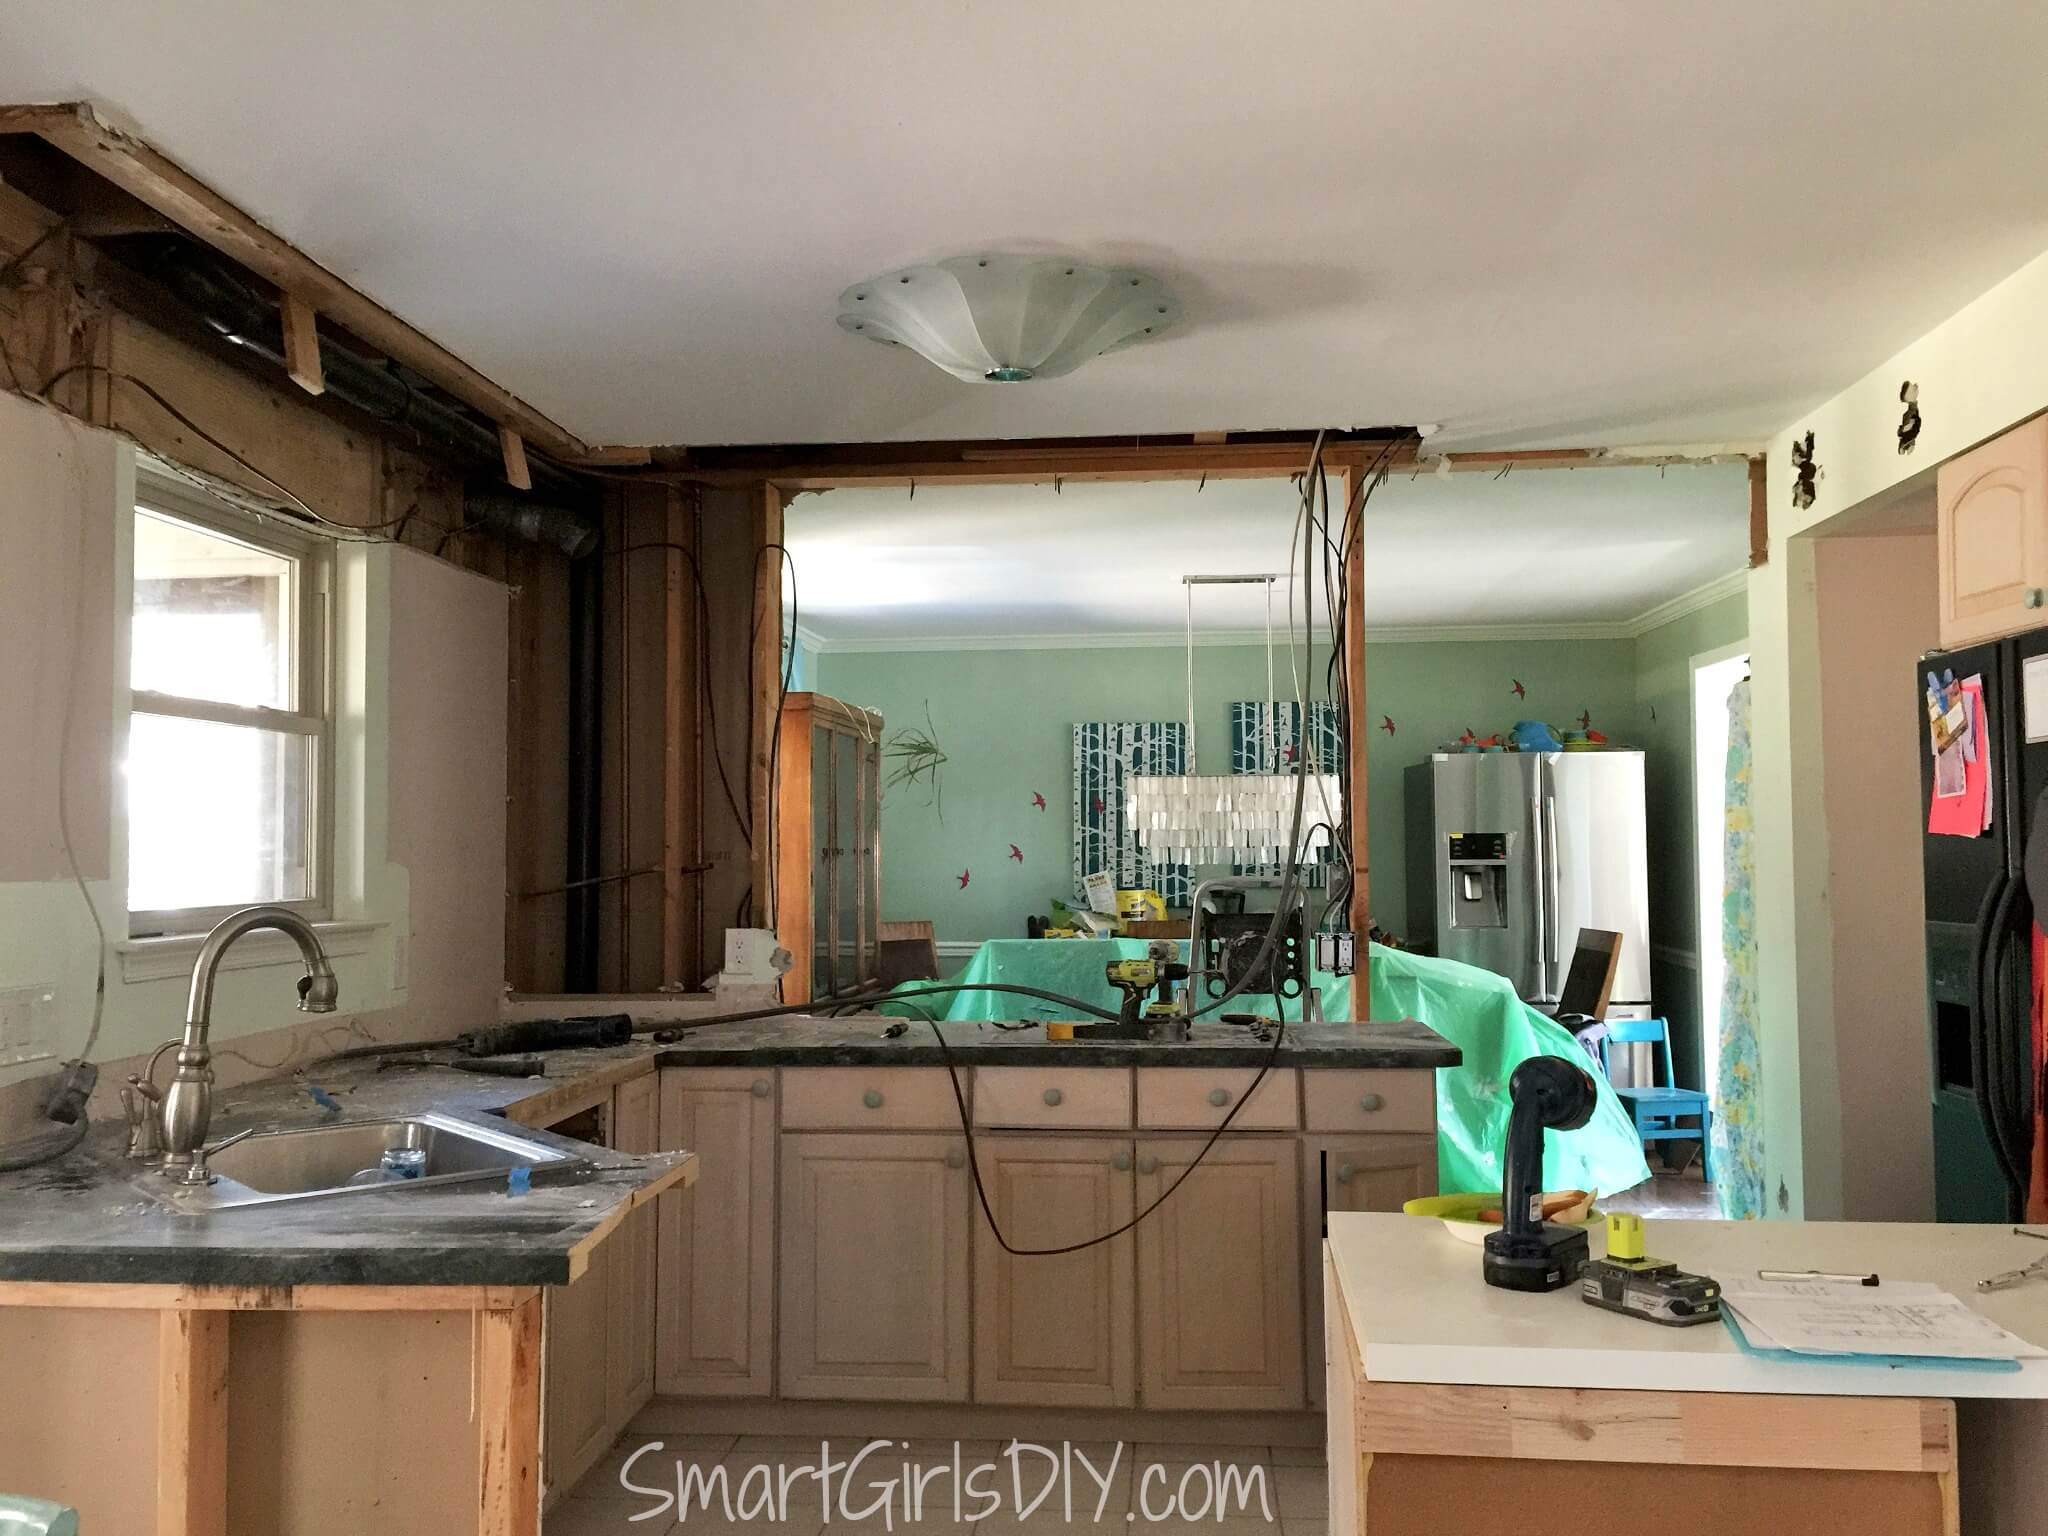 Kitchen demo round 1 kitchen demolition reveals pipes in wall between dining room and kitchen as well as in soffit solutioingenieria Images